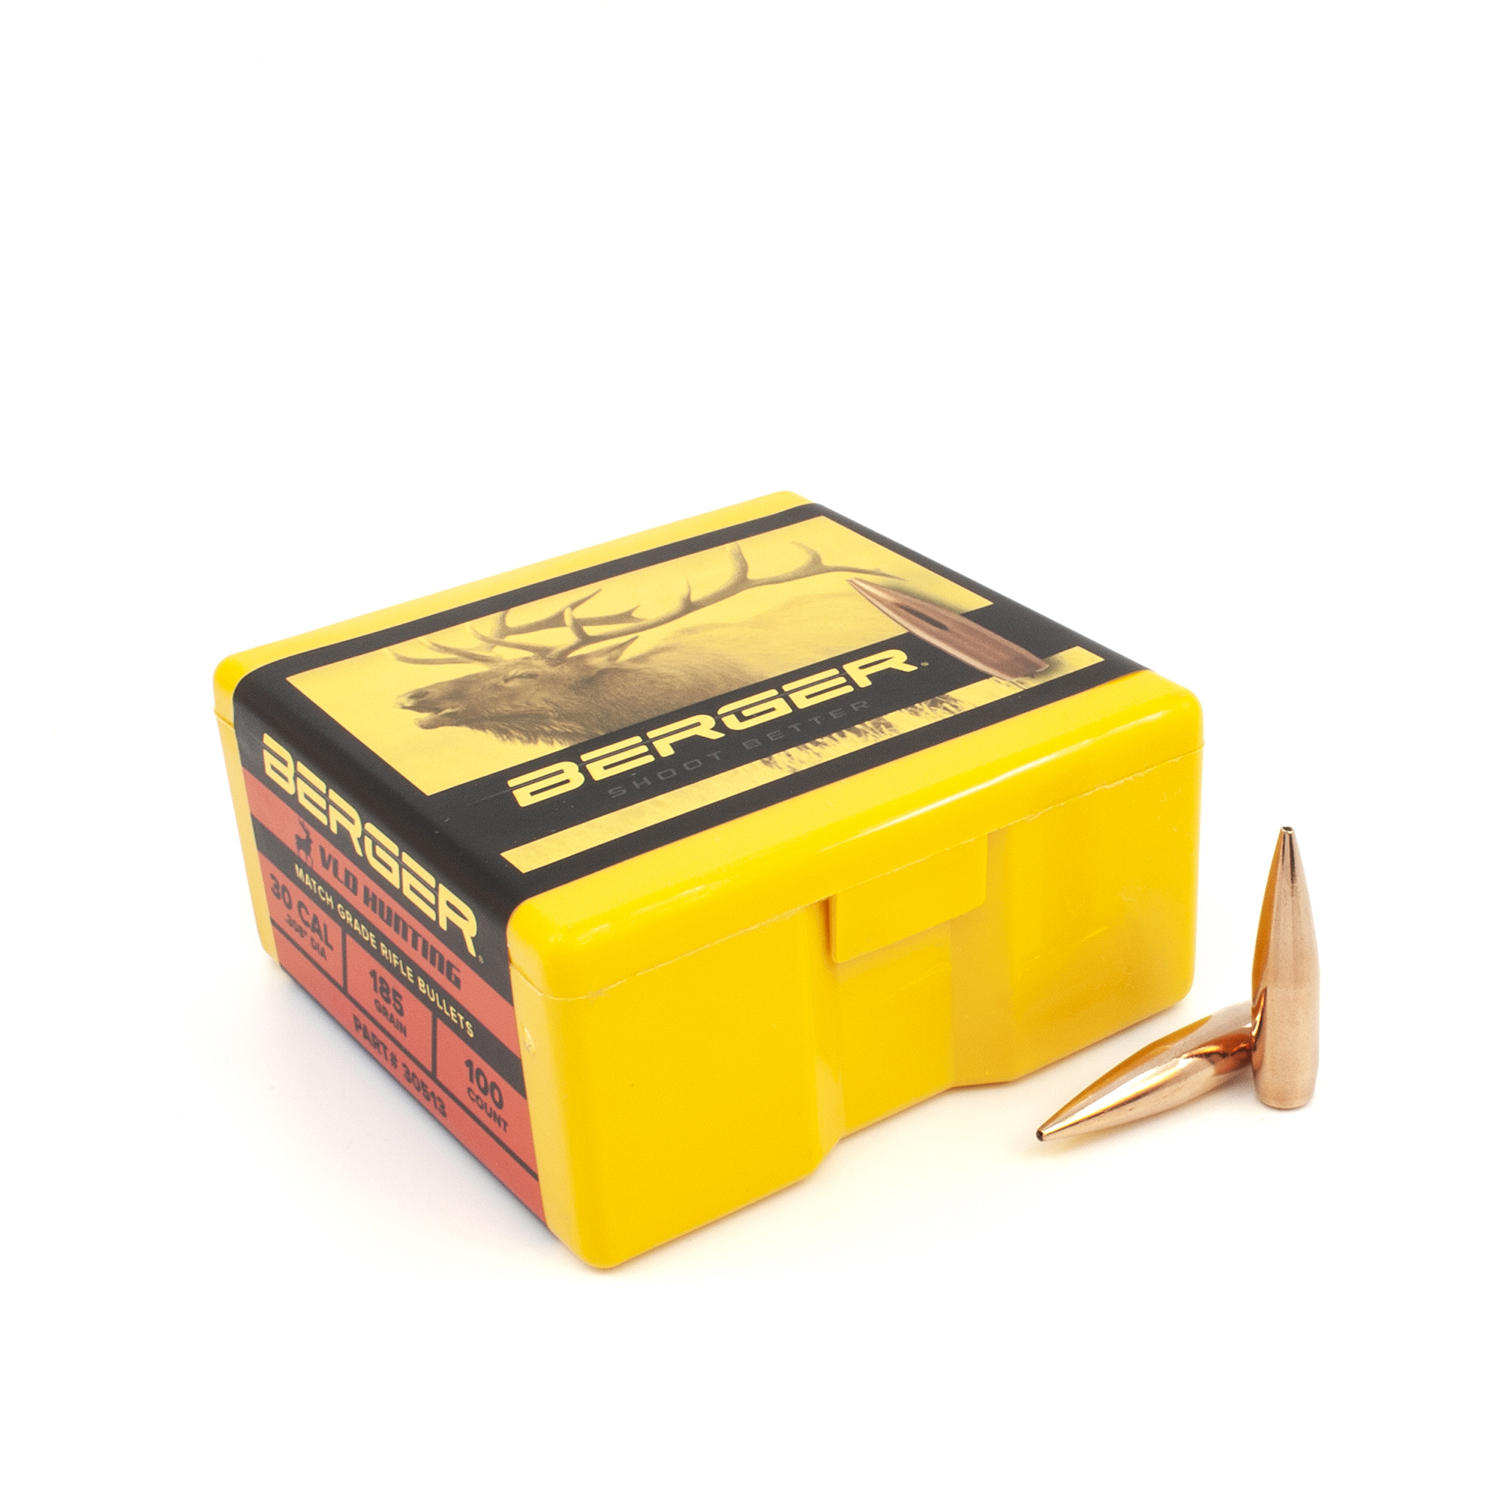 Berger Bullets - .30 cal, 185 gr. VLD Hunting - Box of 100